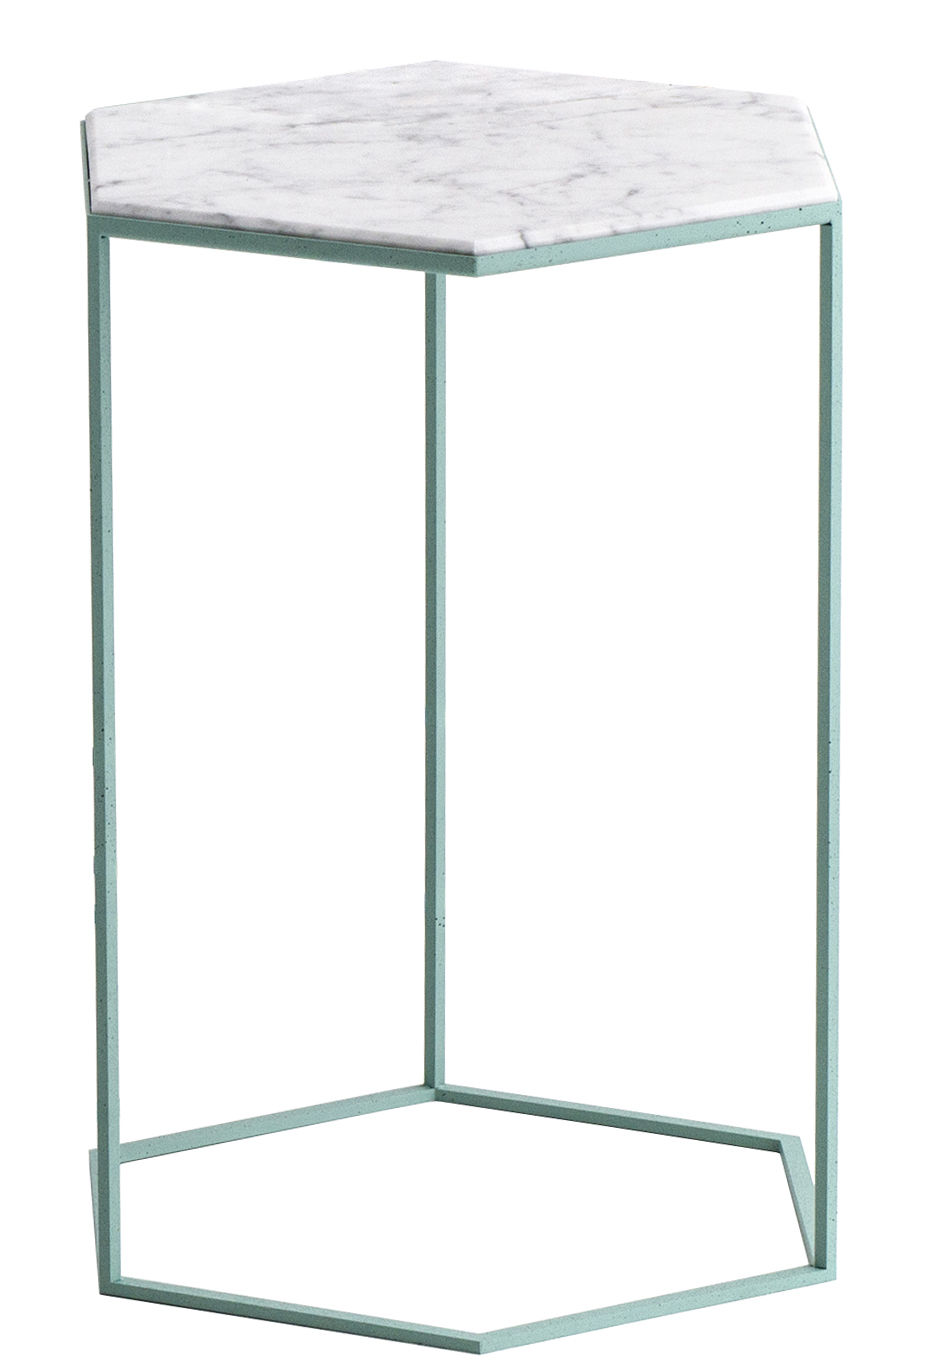 Table d 39 appoint hexxed marbre h 50 cm marbre blanc base verte diesel with moroso - Table d appoint marbre ...